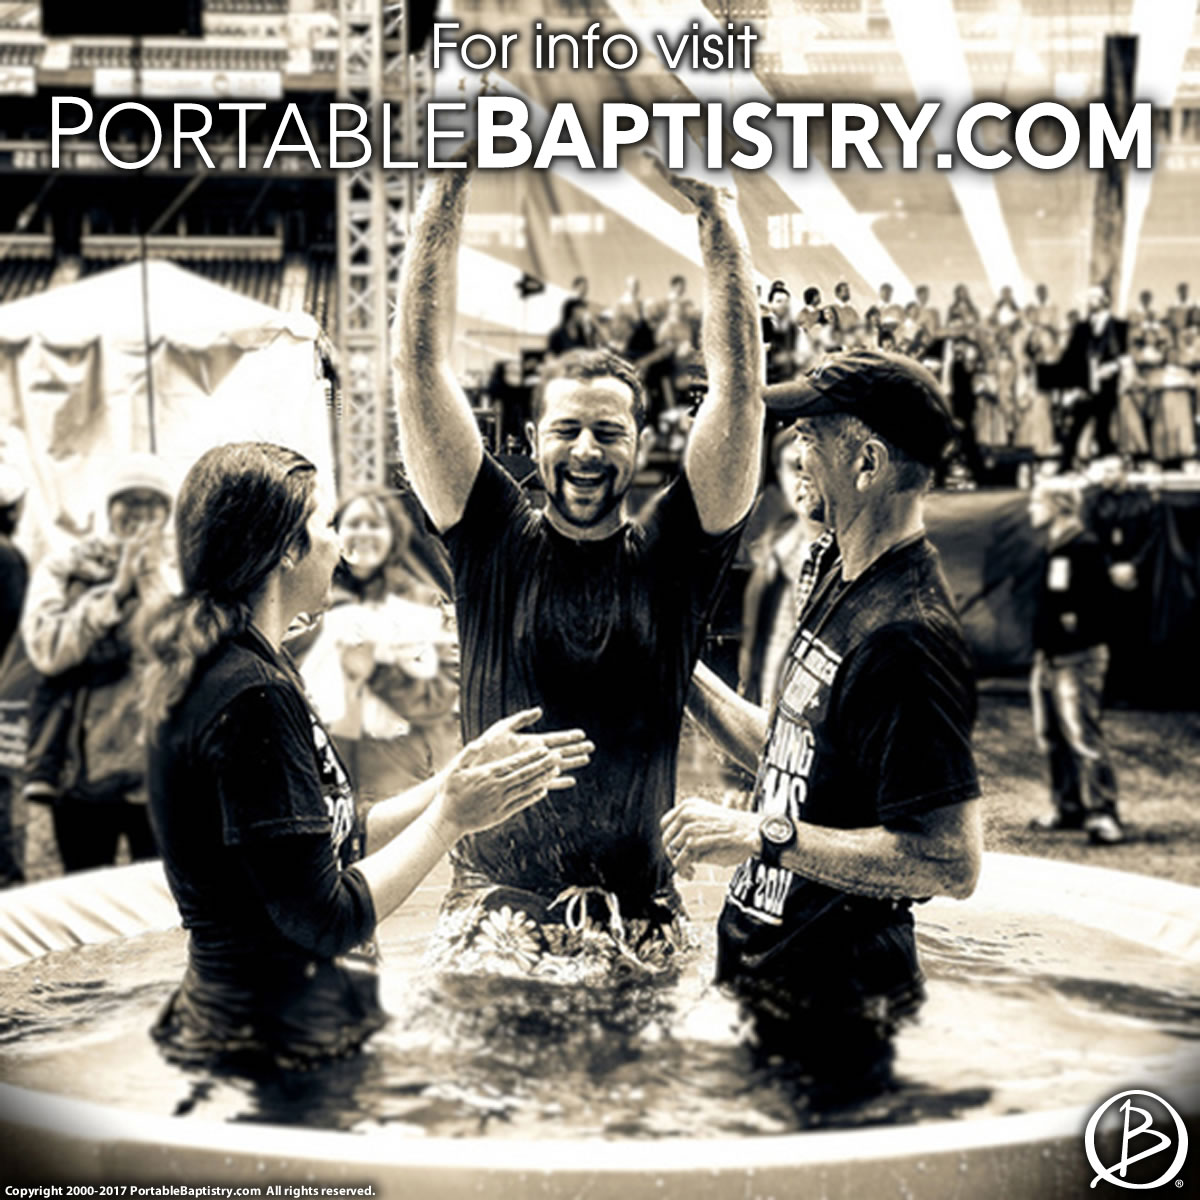 How to Order Baptistry Heaters